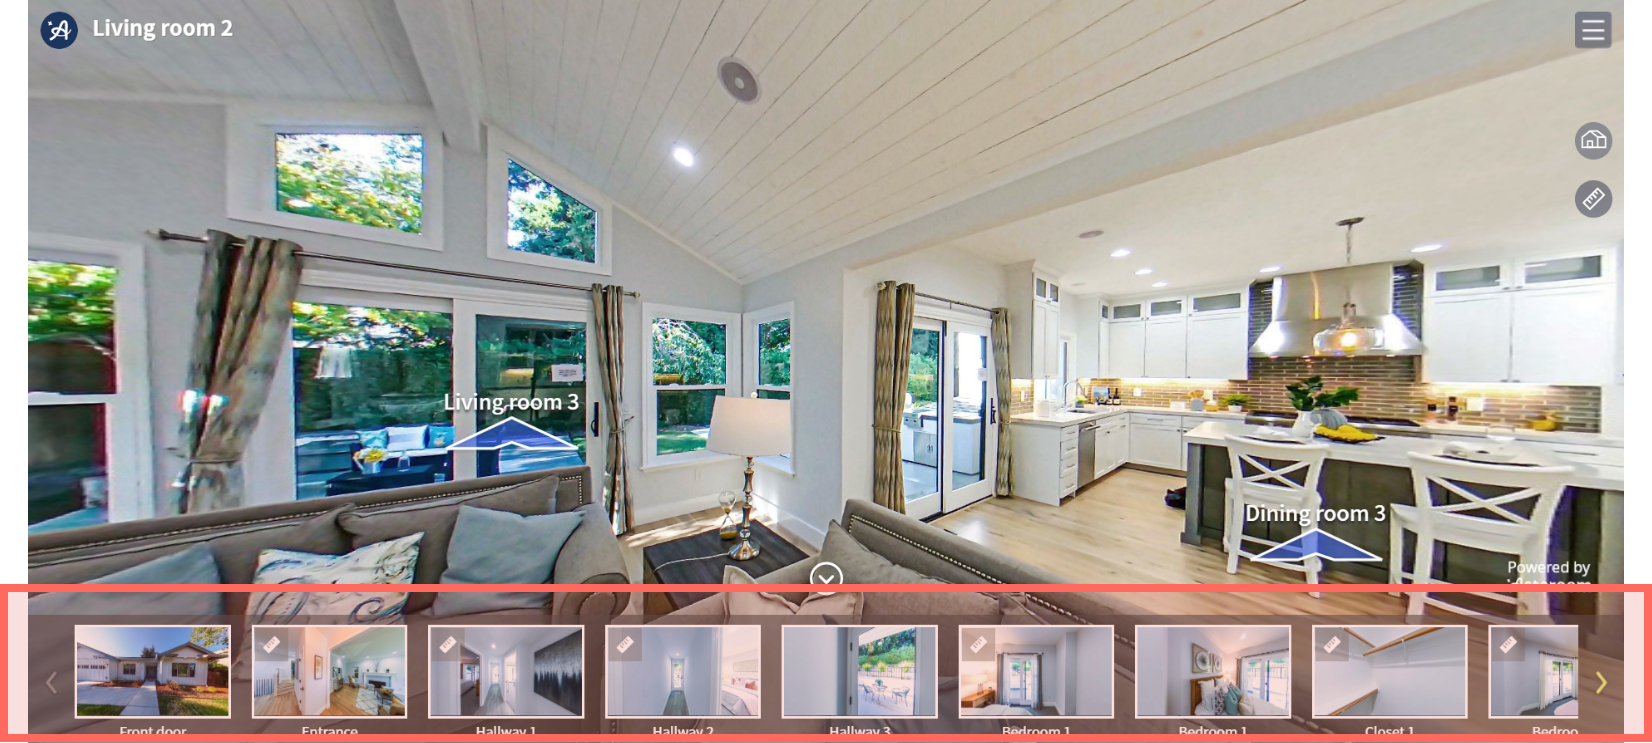 virtual tour navigation bar